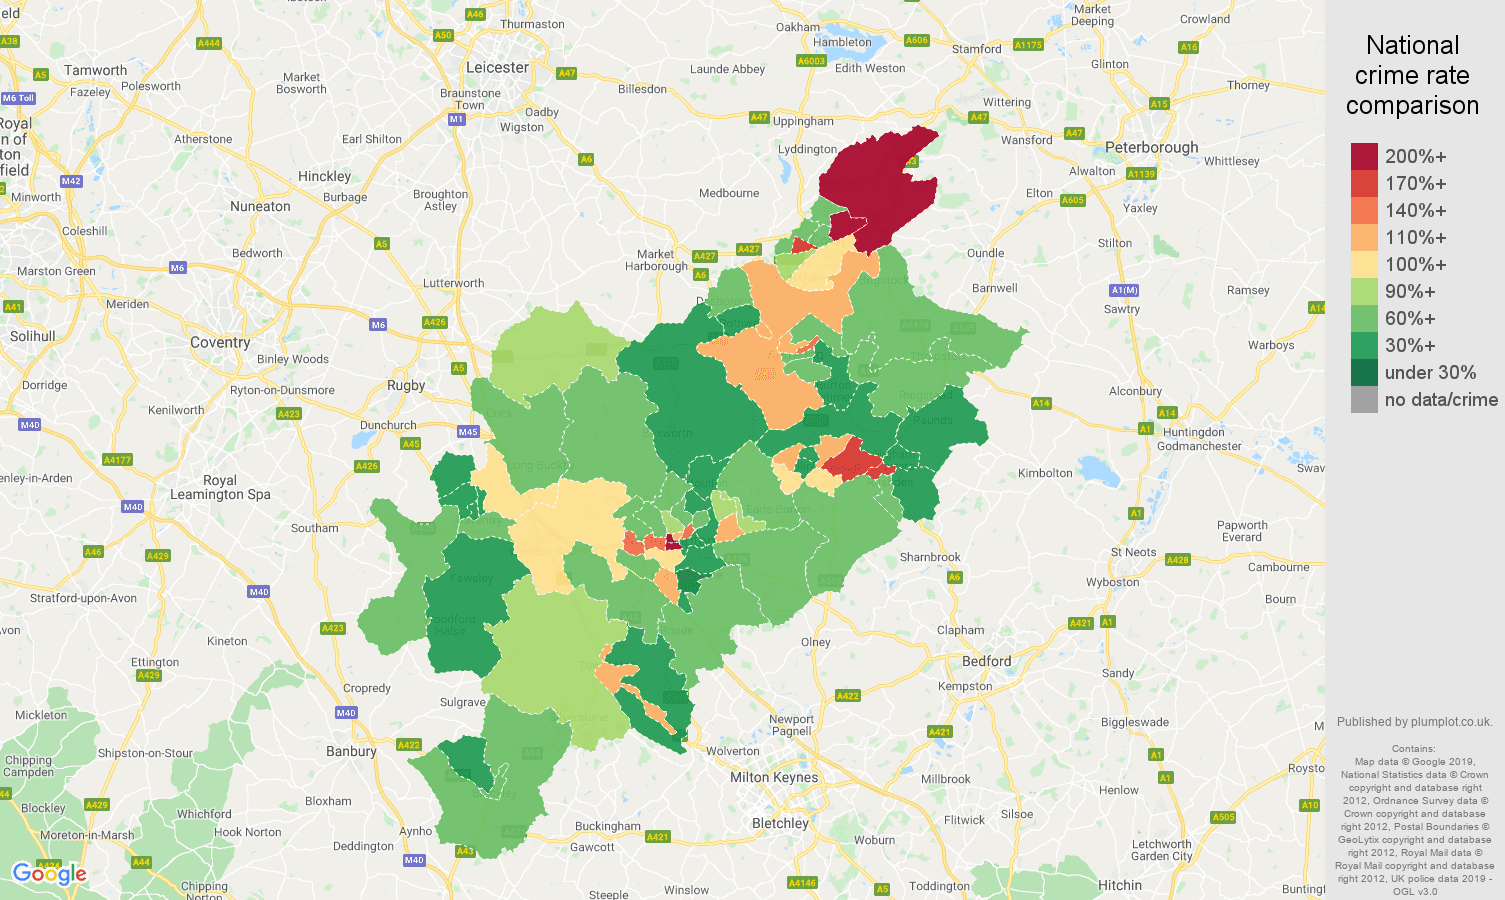 Northampton other theft crime rate comparison map